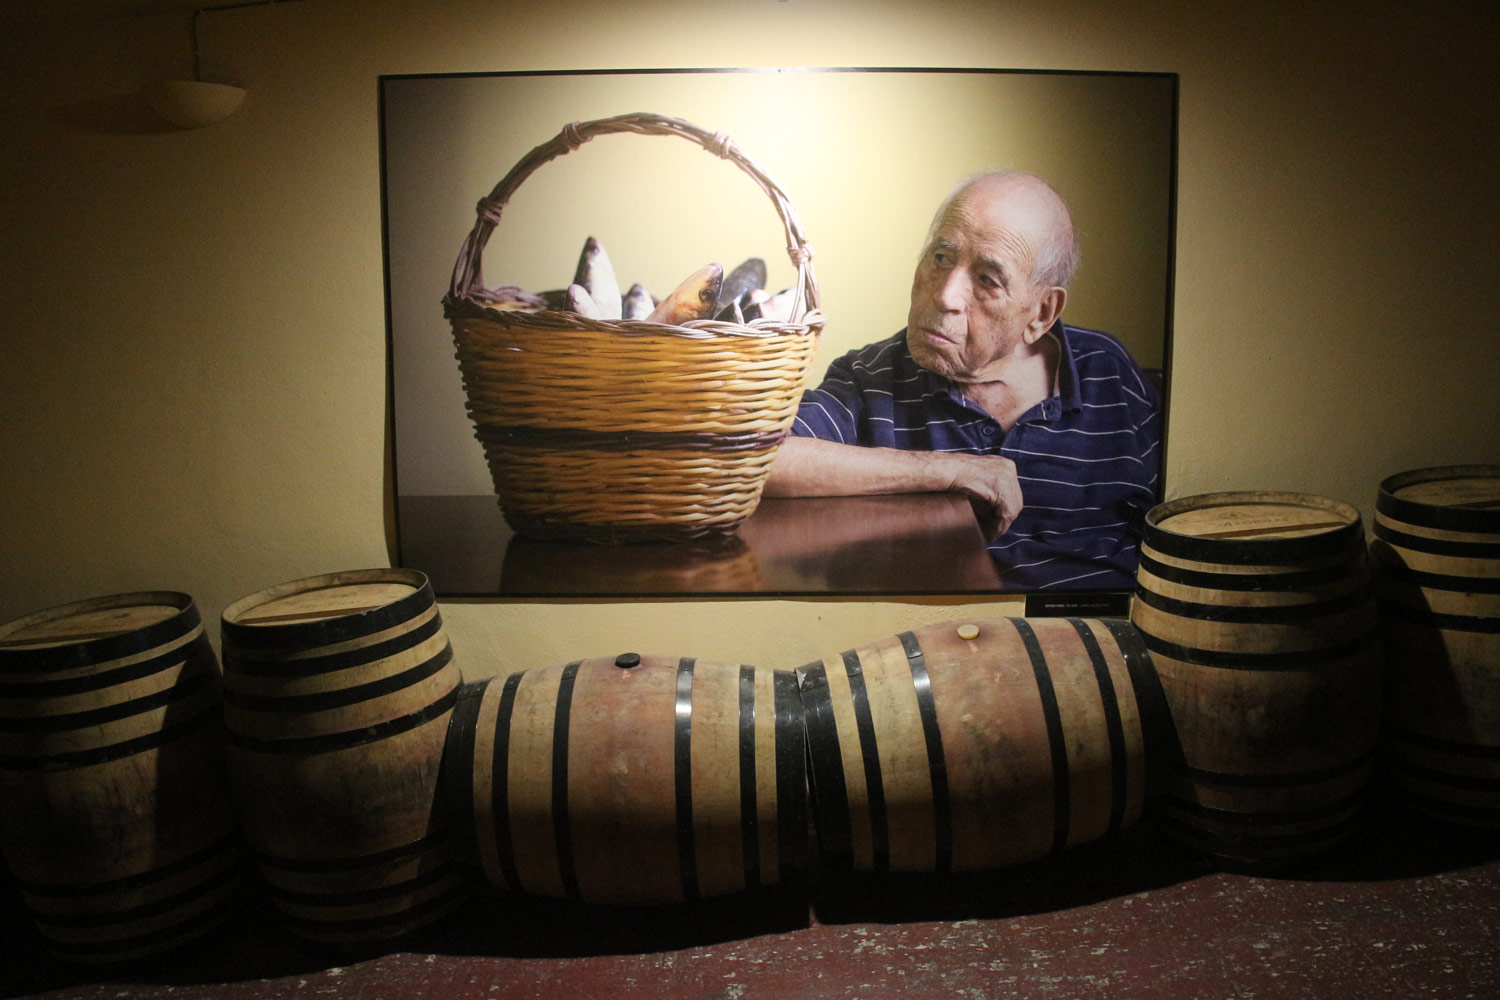 Photos of Sardinian centenarians at Argiolas winery